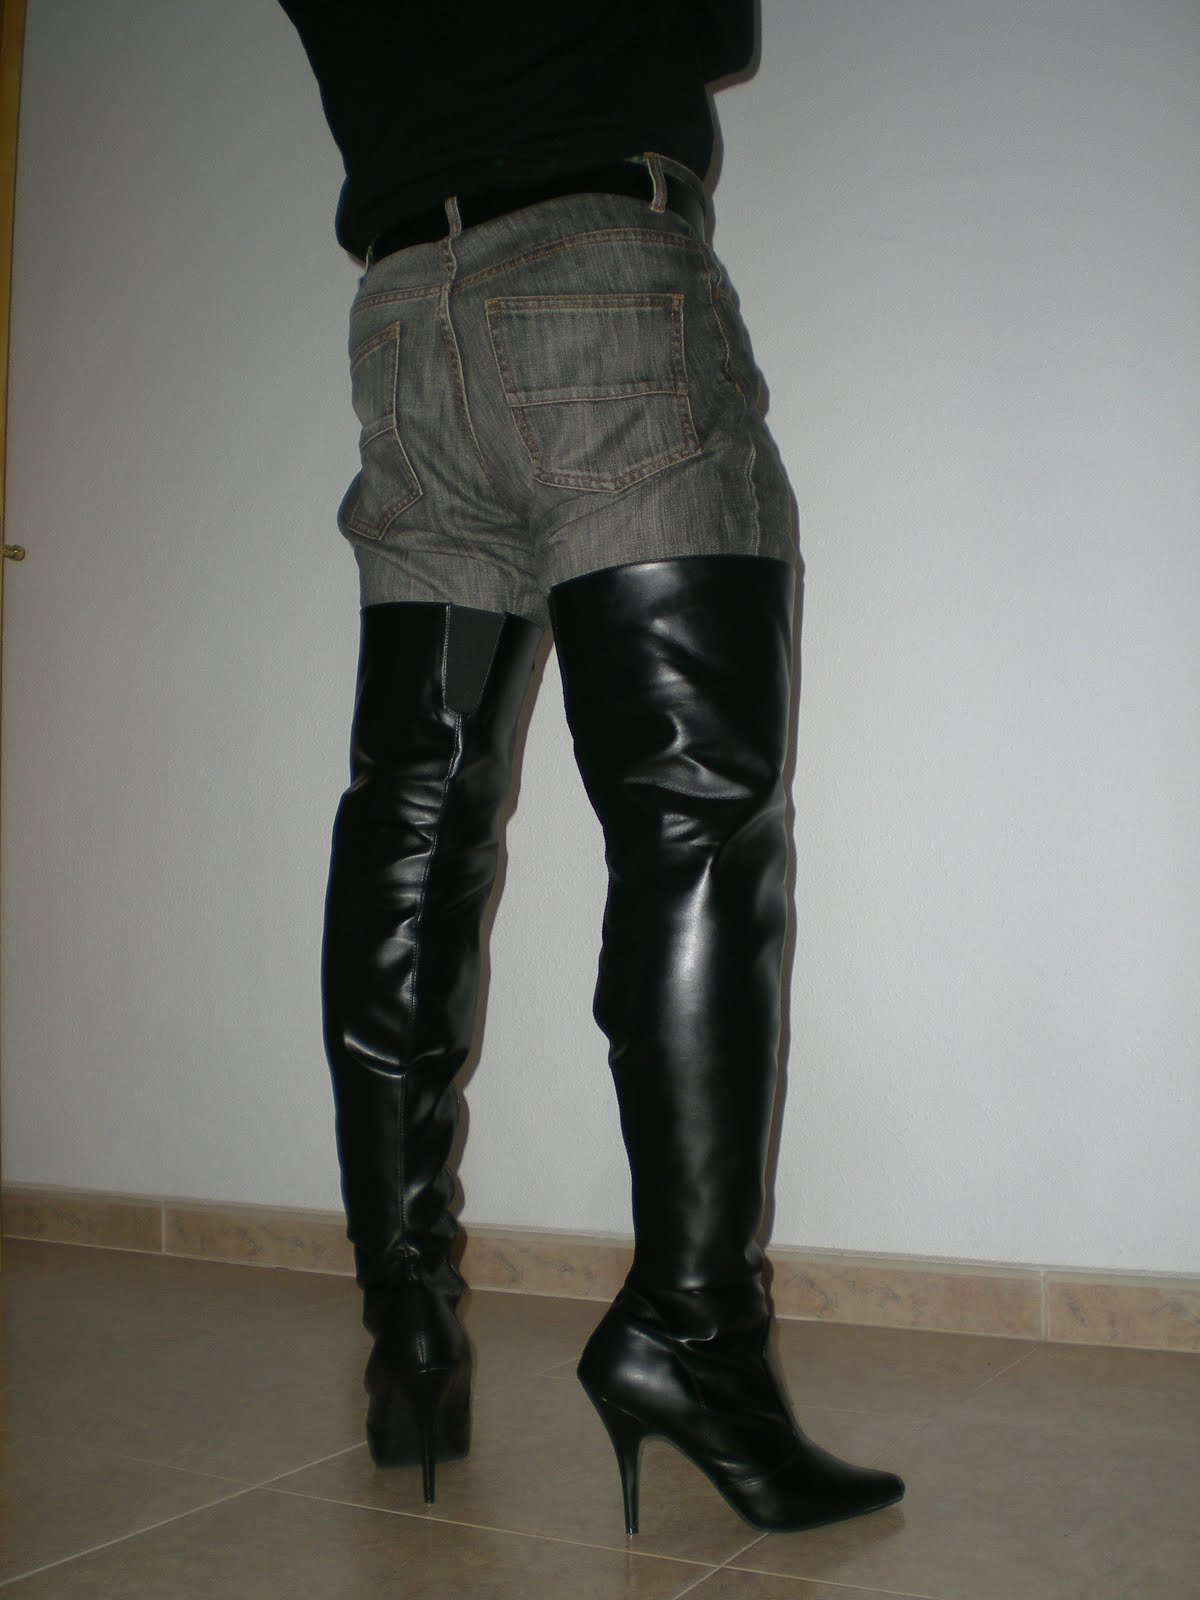 Men In High Heels: Women's Thigh Boots Worn By A Man